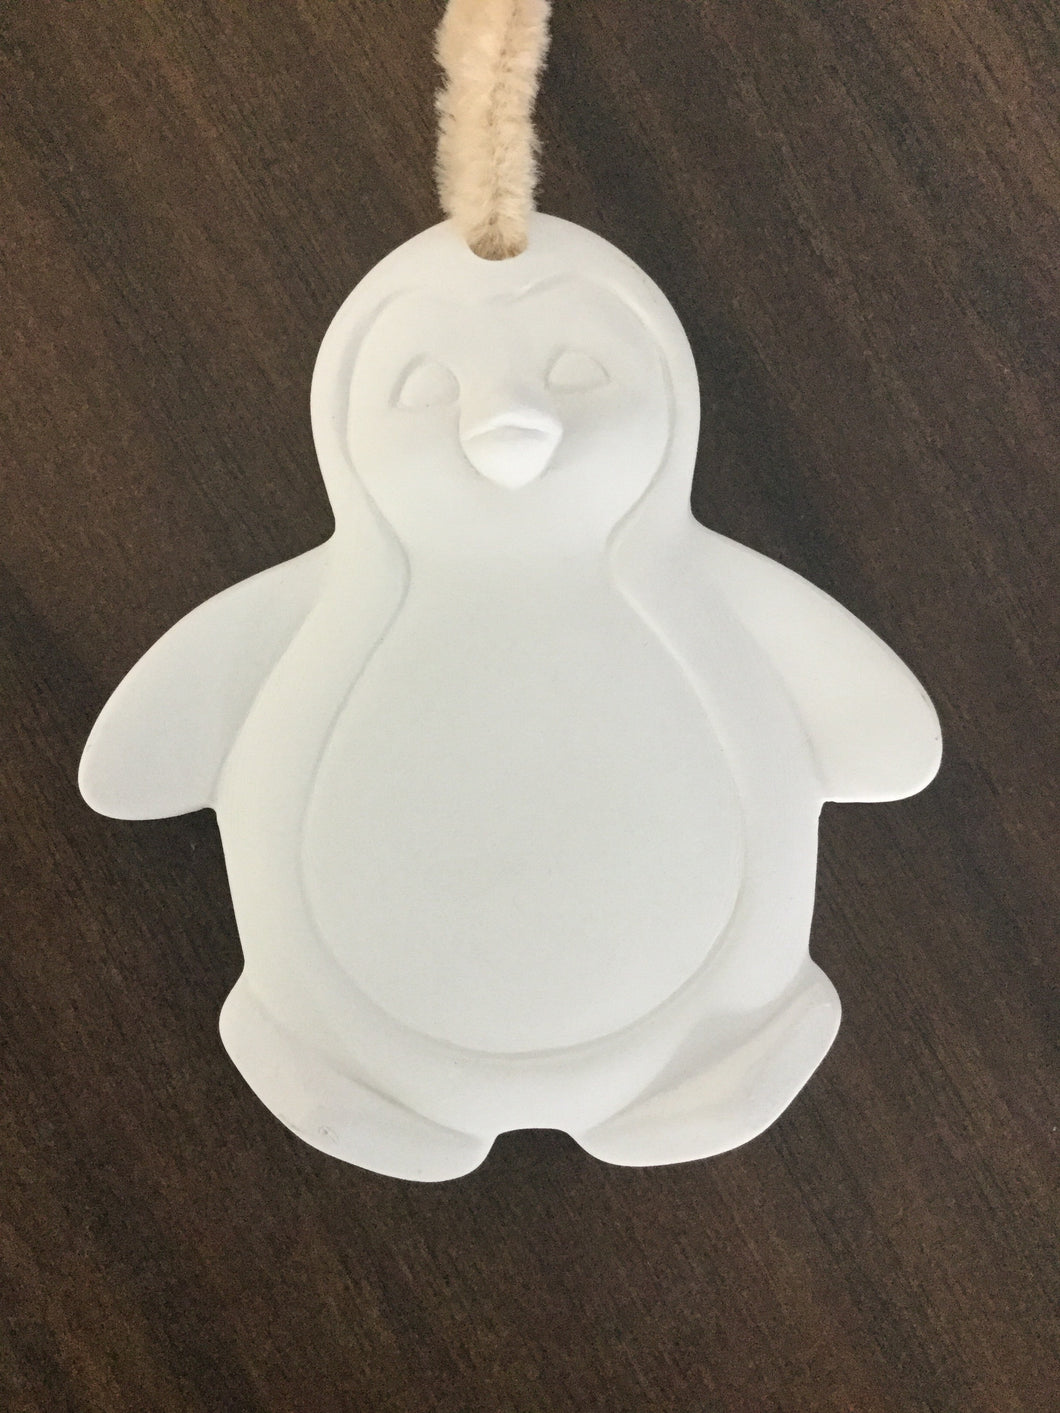 Flat Penguin Ornament